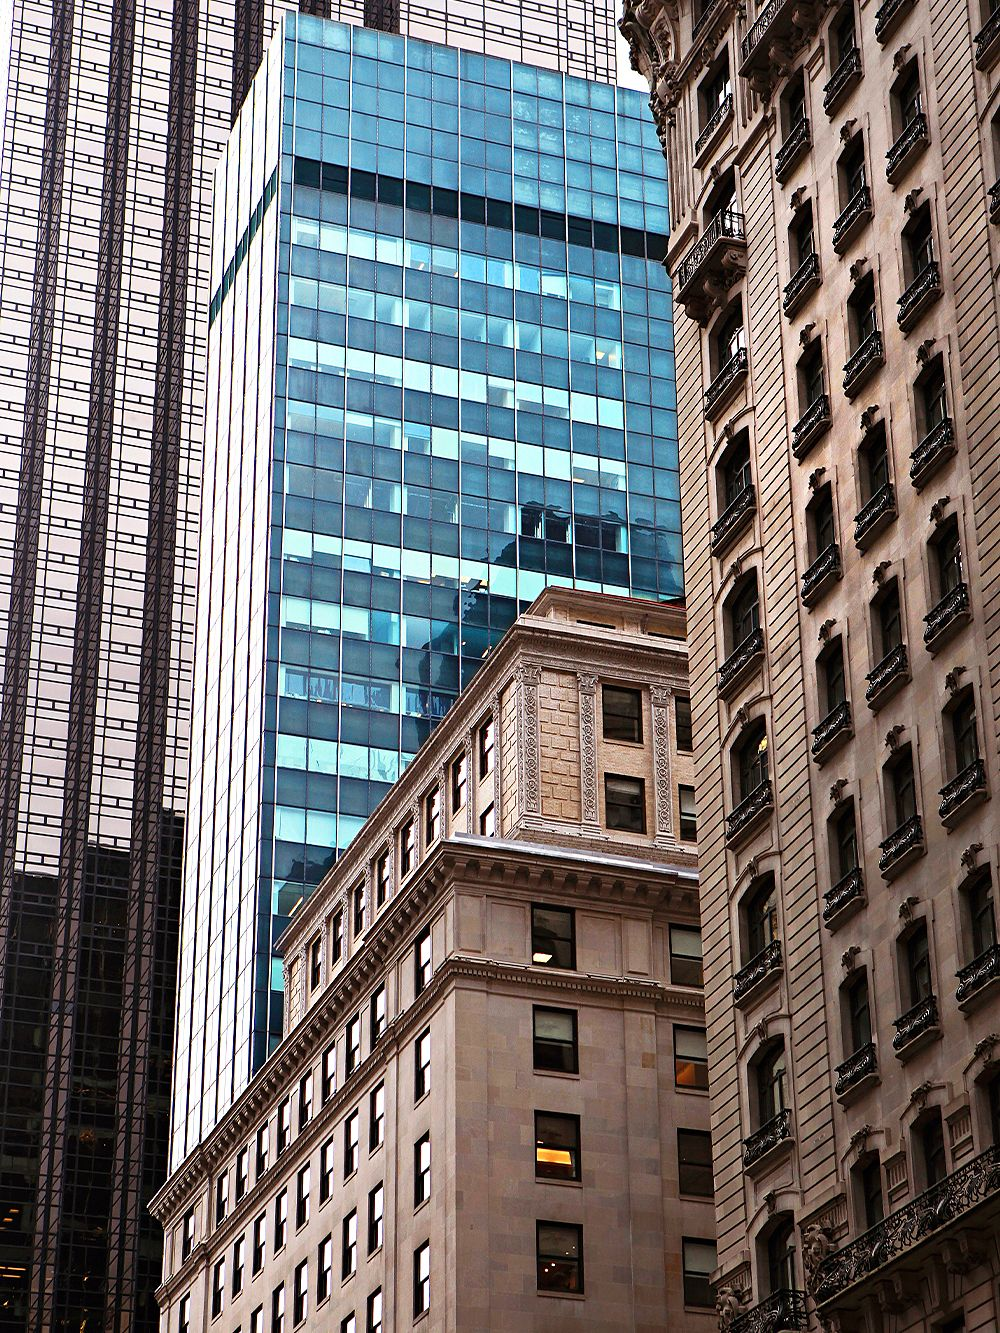 New York on foot: Fifth Avenue skyscrapers